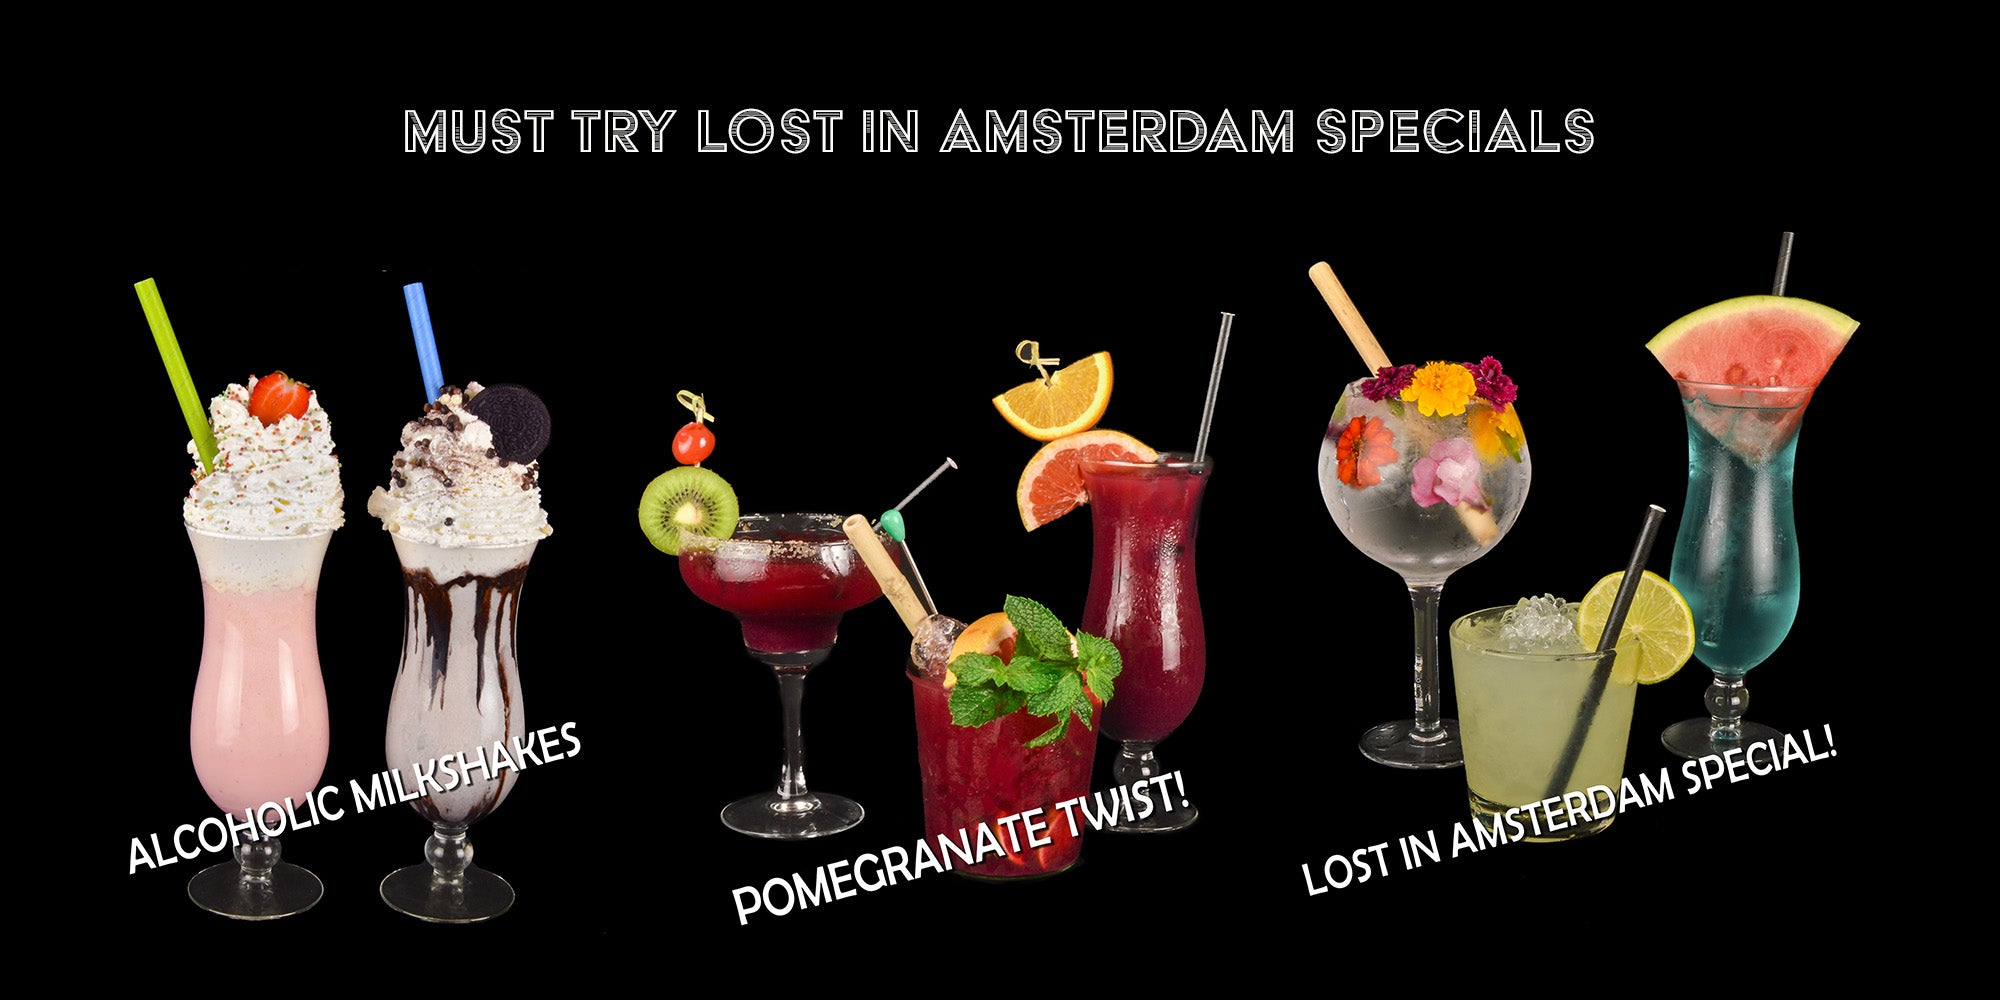 lost in amsterdam specials